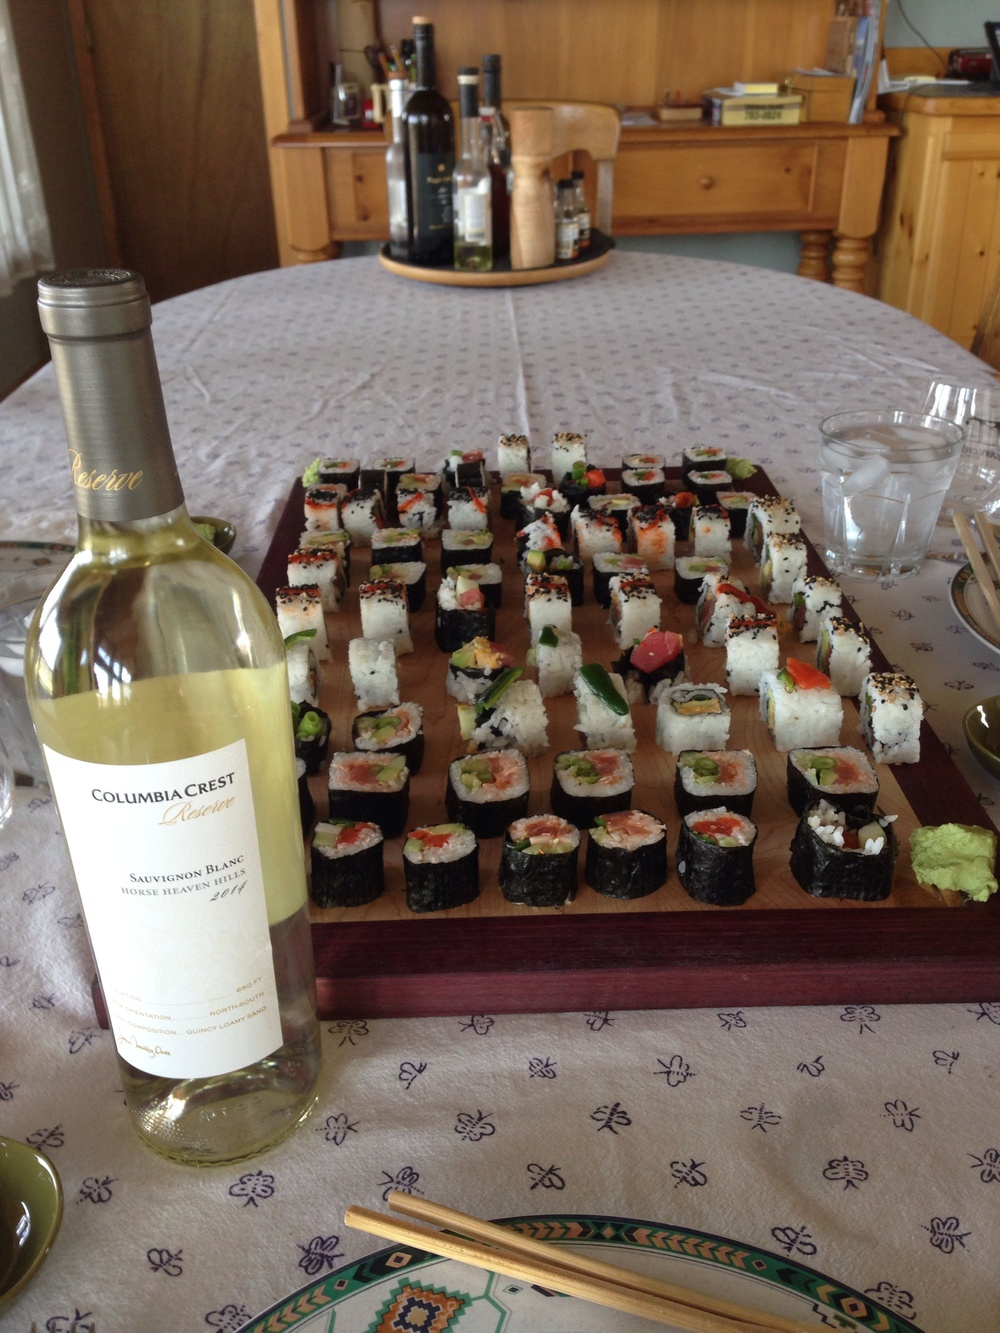 The reserve Sauvignon Blanc was a great choice for lunch.